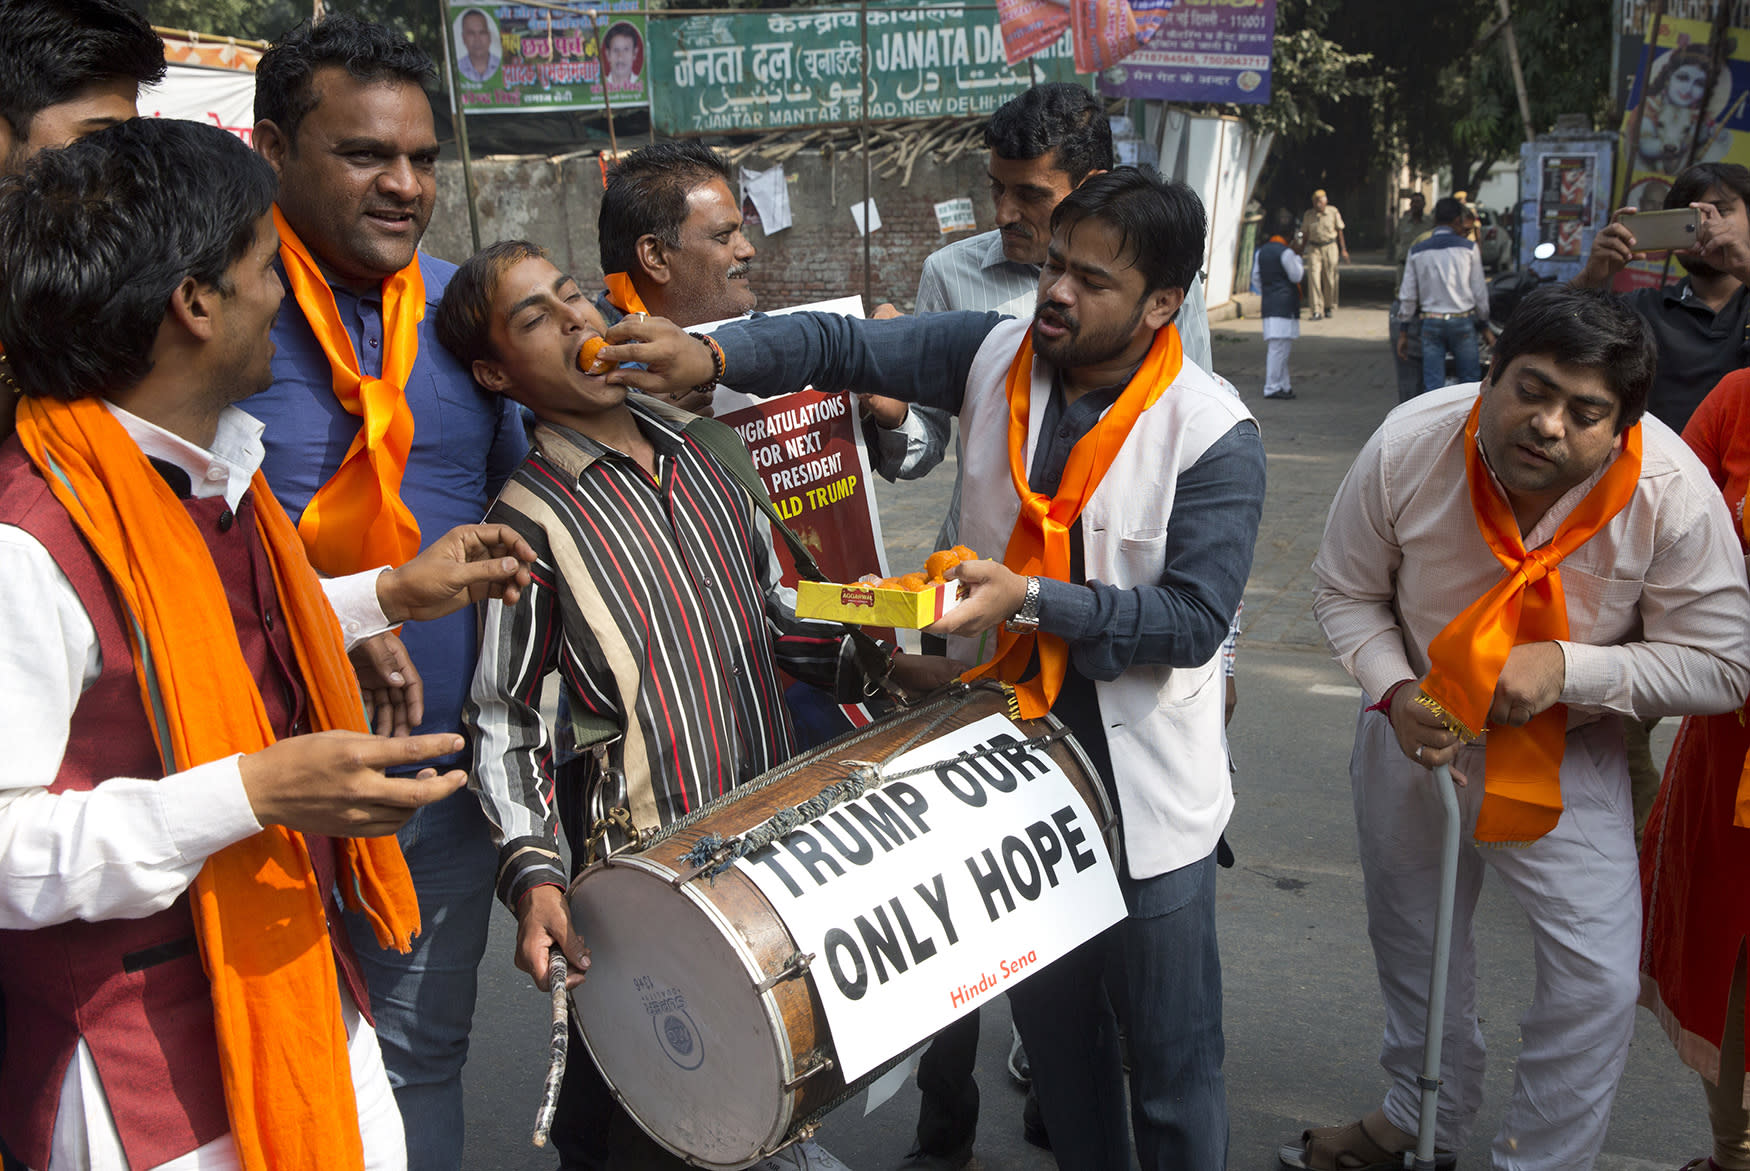 <p>Activists of the Hindu Sena, or Hindu Army, a local organization offer sweets to each other in anticipation of the wining of U.S. presidential candidate Donald Trump in New Delhi, India, Wednesday, Nov. 9, 2016. (AP Photo/Manish Swarup) </p>